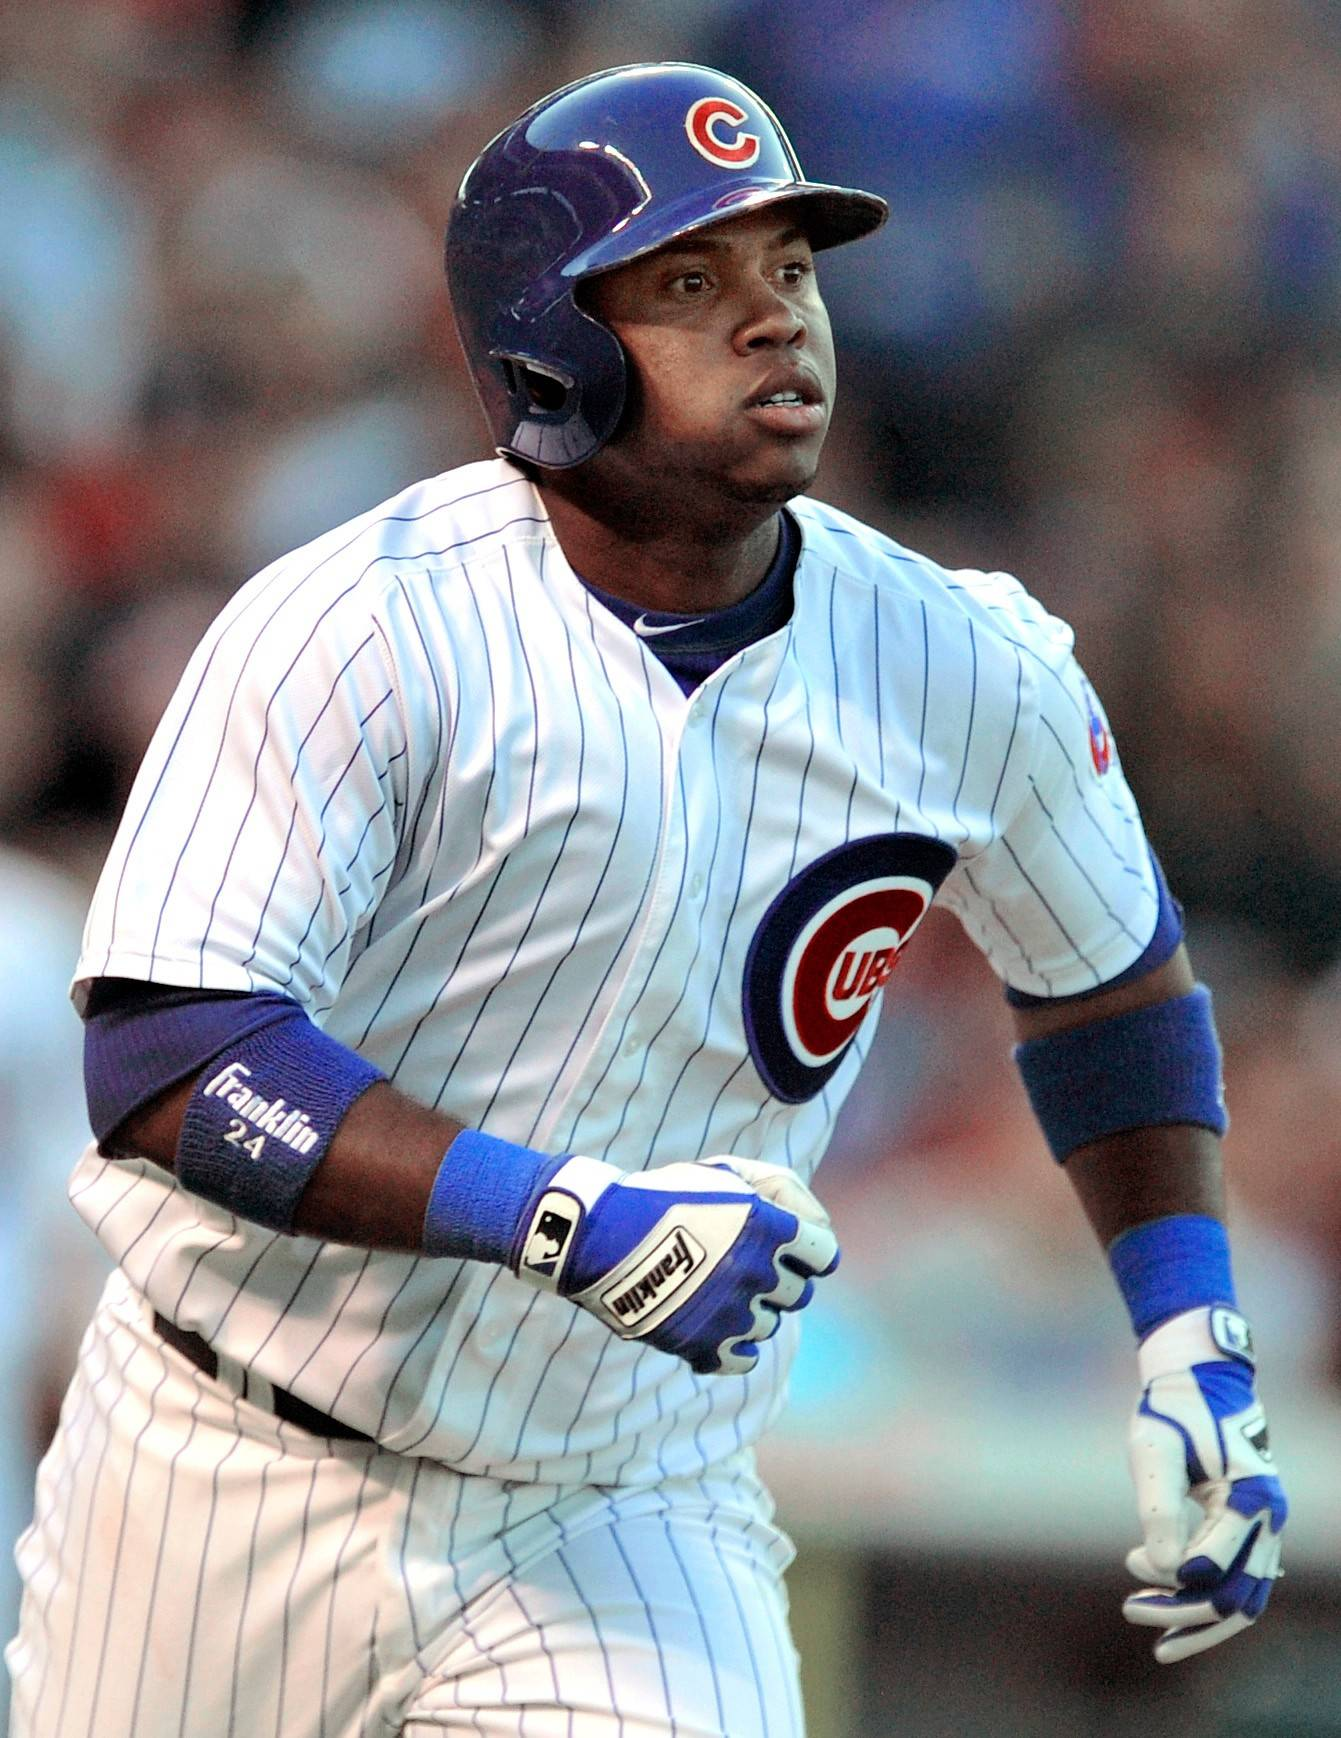 Luis Valbuena has played plenty of third base for the Cubs the past two seasons but he is probably best suited for backup roles.